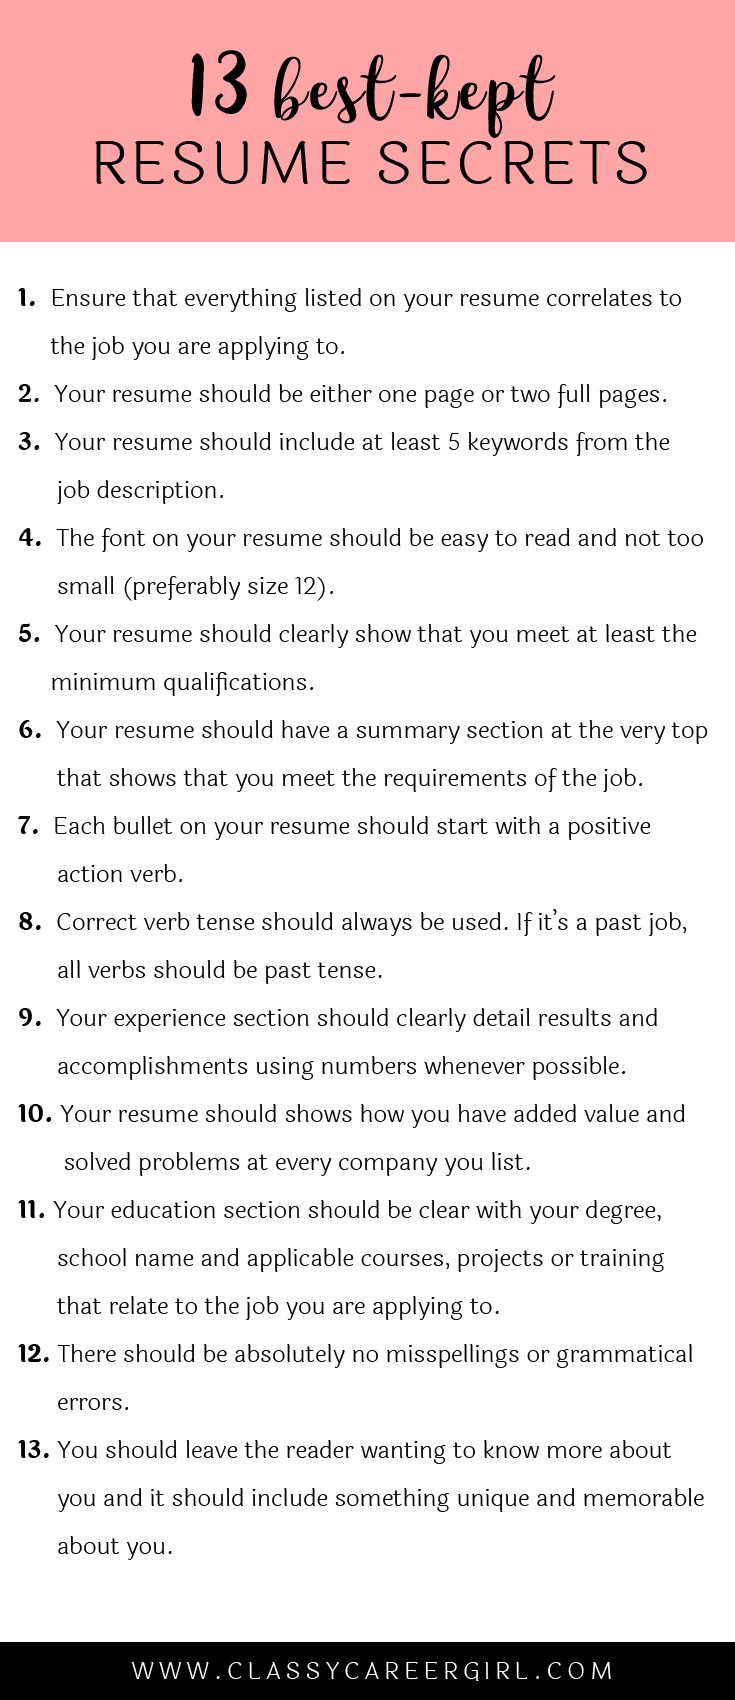 Opposenewapstandardsus  Winning  Ideas About Resume On Pinterest  Cv Format Resume Cv And  With Glamorous Some Hiring Managers Will Toss Your Resume Out If You Dont Know These  With Agreeable Sample Resume For Home Health Aide Also Entertainment Industry Resume In Addition Resumes For High Schoolers And Cover Letter Sample Resume As Well As Technical Skills On A Resume Additionally Job Resume Examples For High School Students From Pinterestcom With Opposenewapstandardsus  Glamorous  Ideas About Resume On Pinterest  Cv Format Resume Cv And  With Agreeable Some Hiring Managers Will Toss Your Resume Out If You Dont Know These  And Winning Sample Resume For Home Health Aide Also Entertainment Industry Resume In Addition Resumes For High Schoolers From Pinterestcom